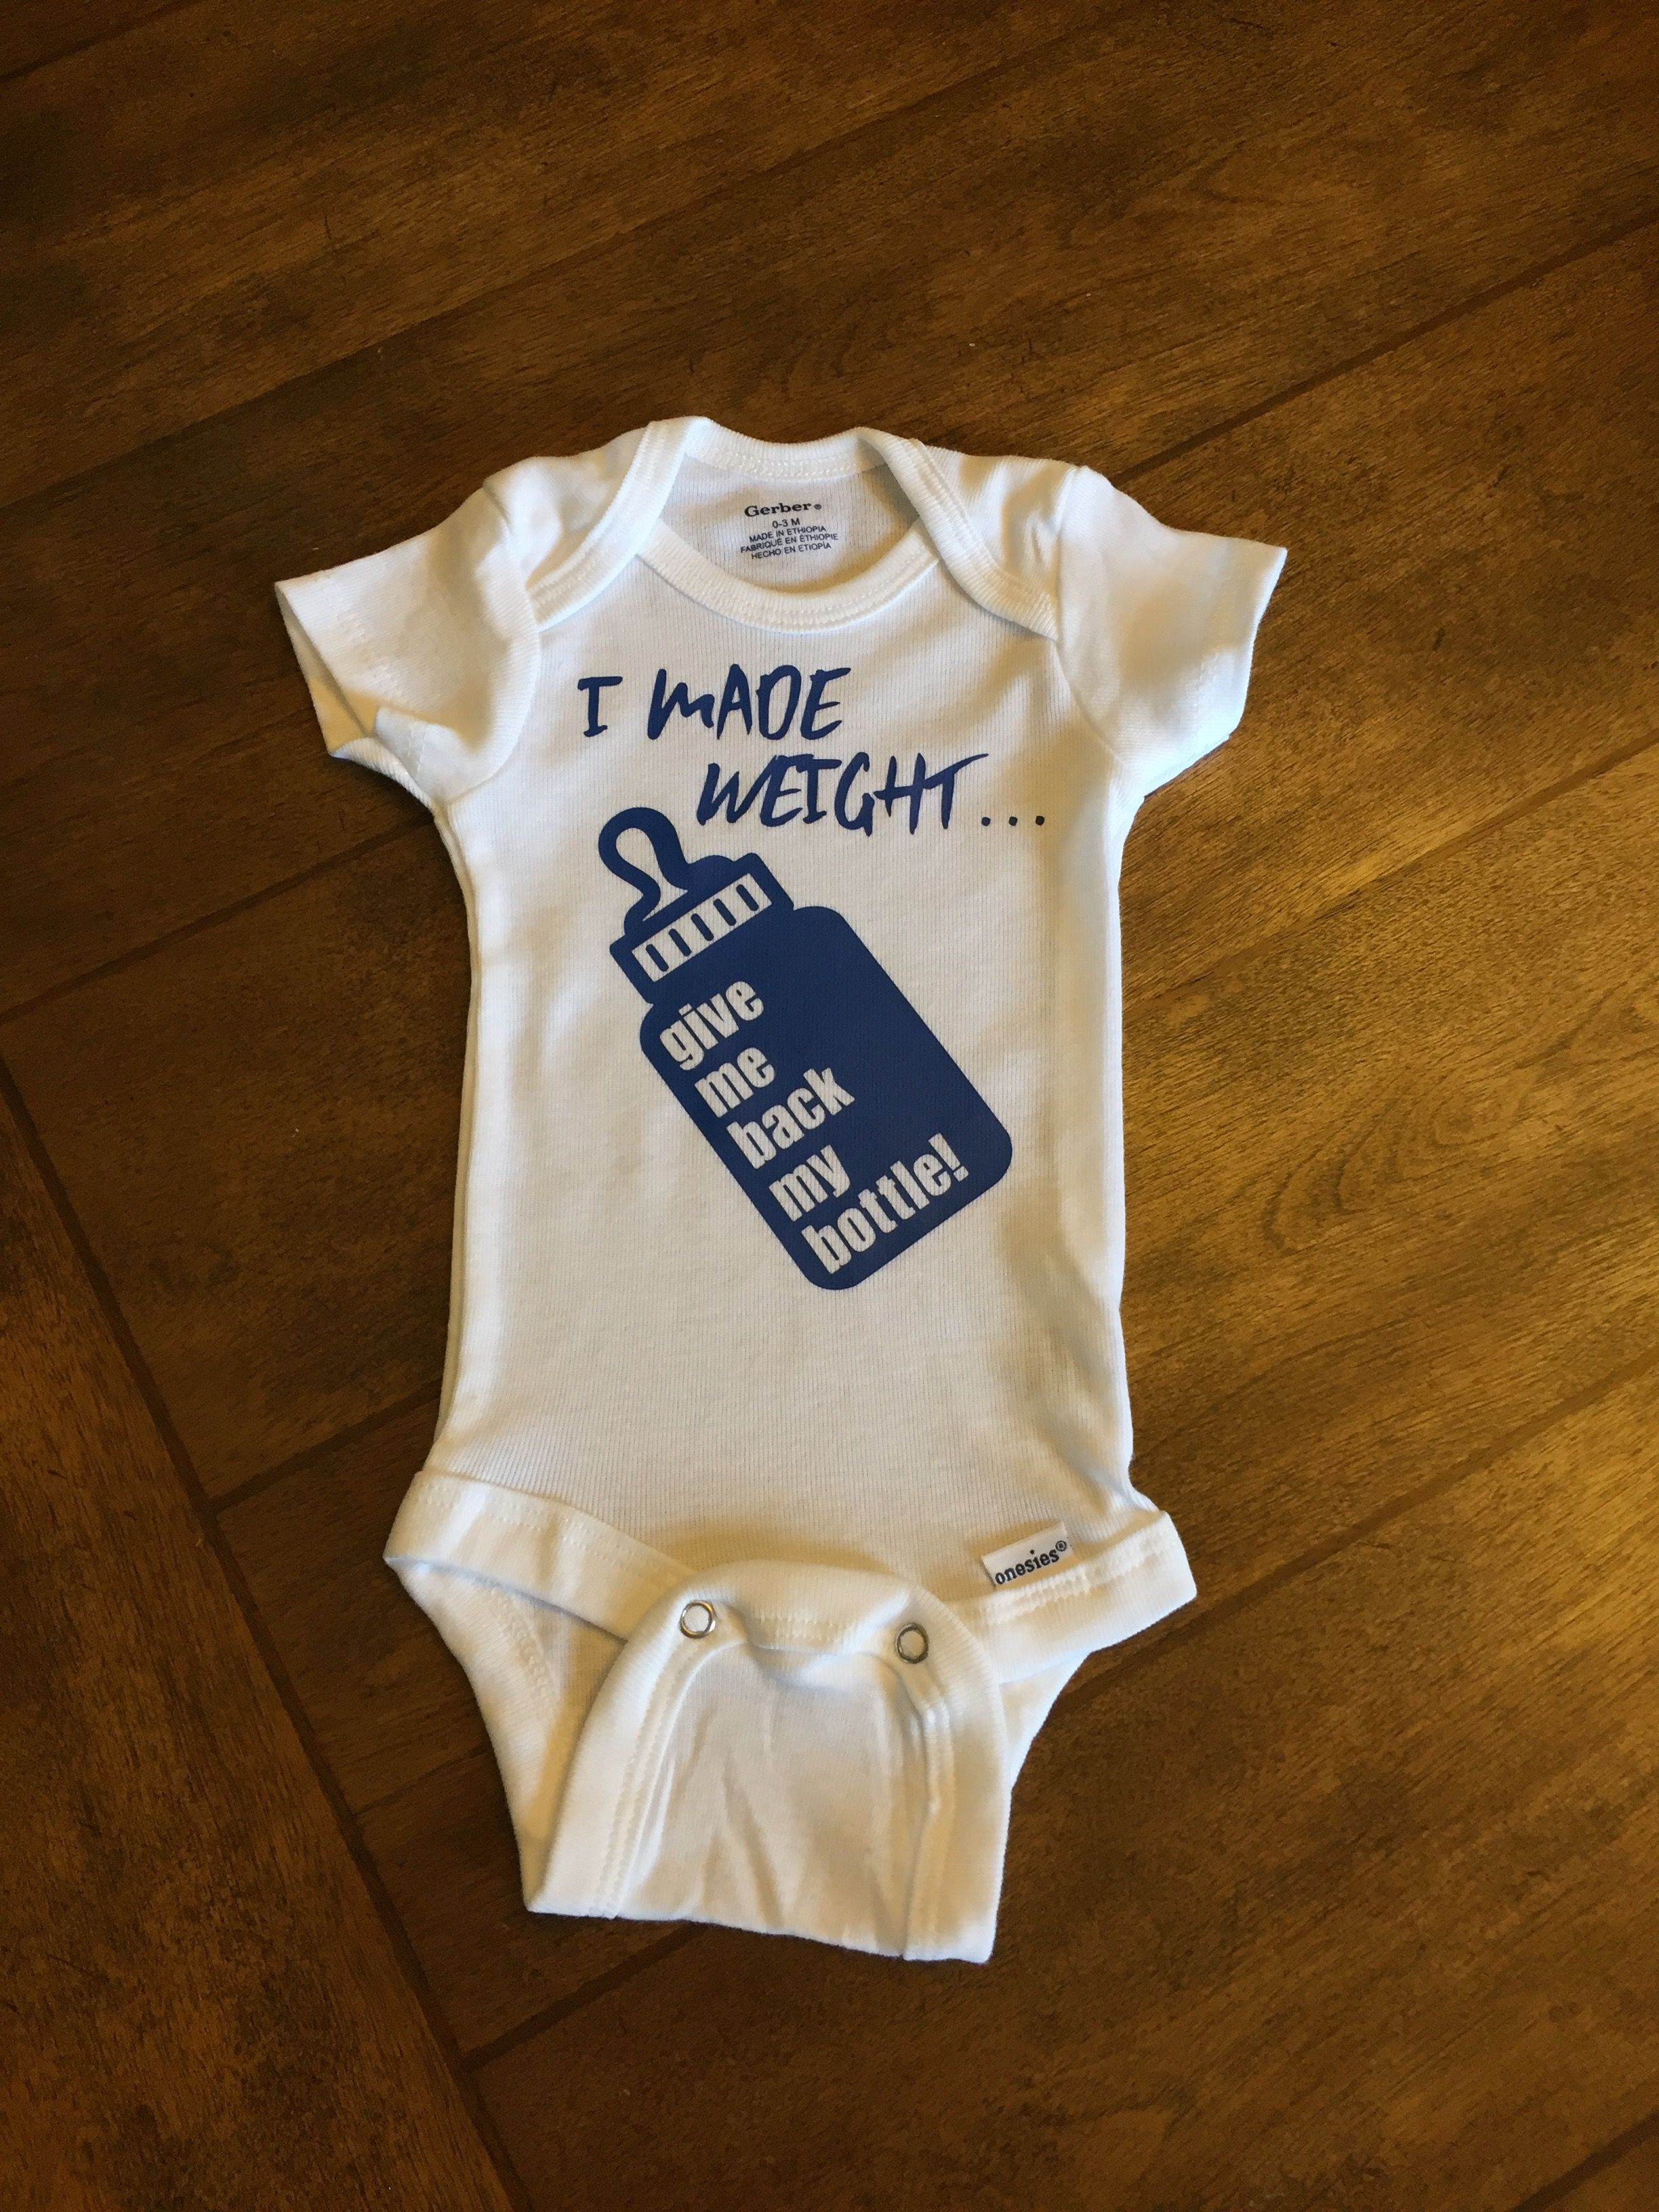 c49a08dd8 Wrestling onesie #SugarMaplesStudio #imadeweight #givemebackmybottle  Wrestling Outfits, Wrestling Quotes, Wrestling Singlet